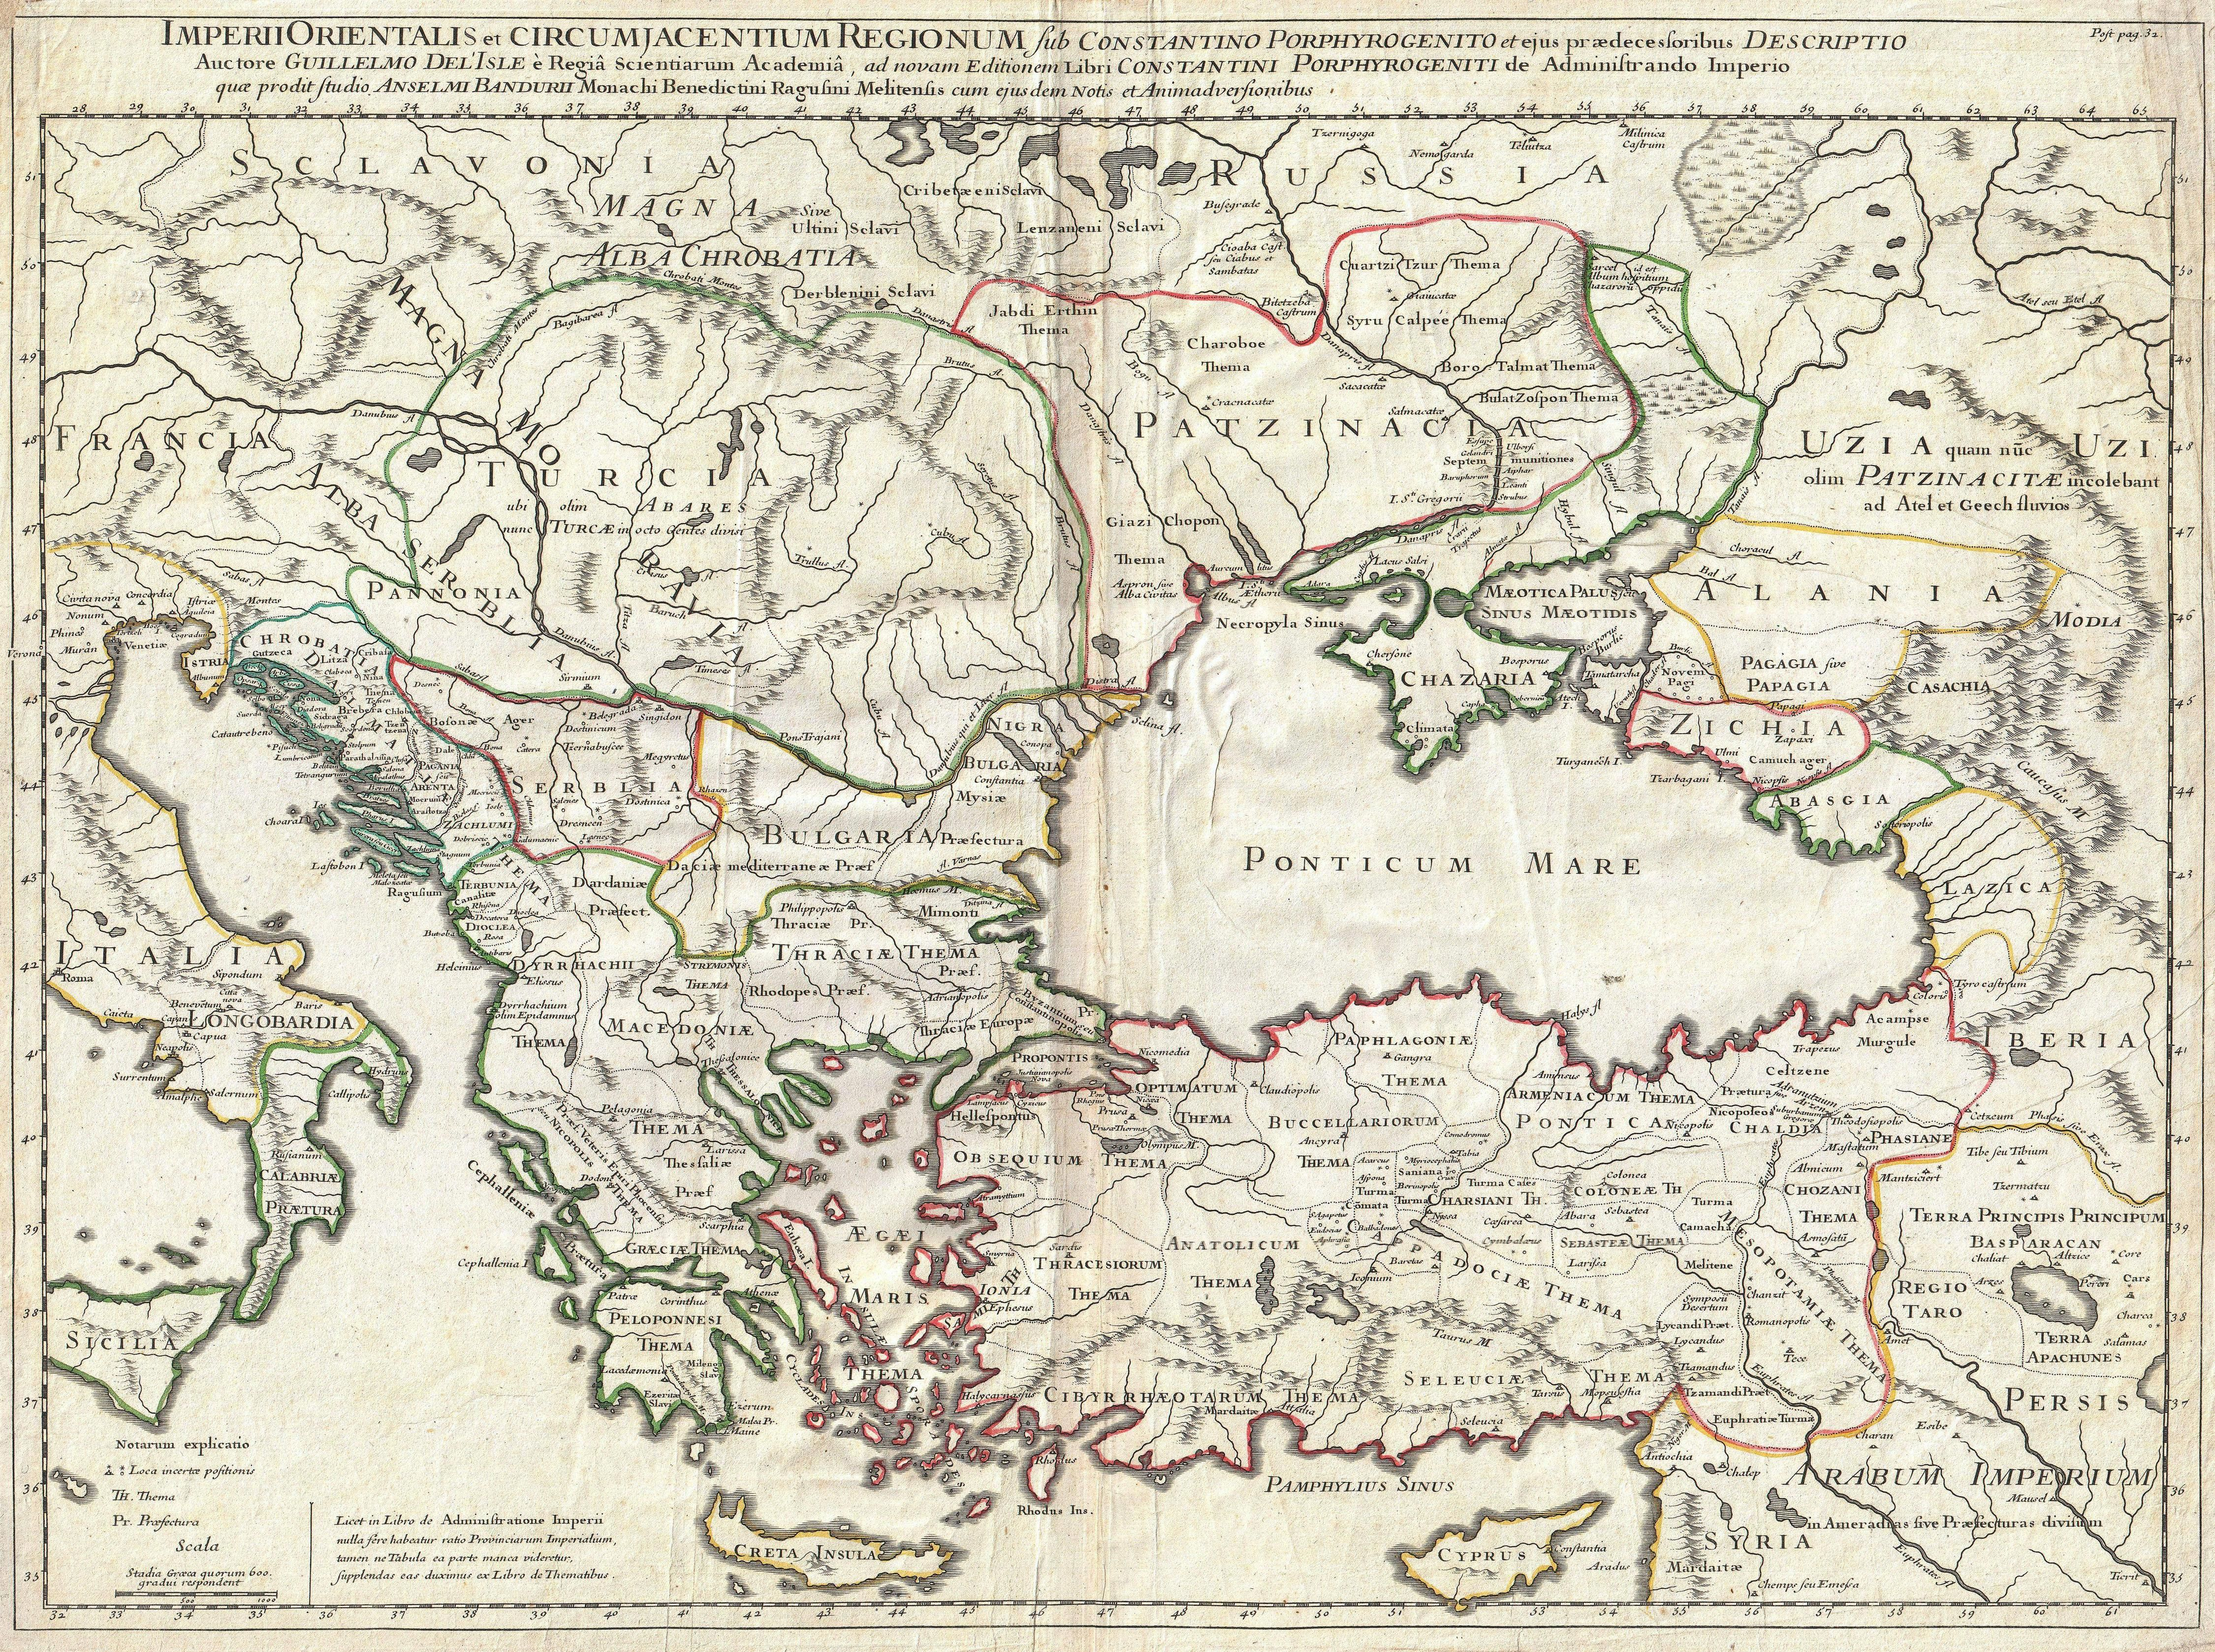 1715 de lisle map of the eastern roman empire under constantine 1715 de lisle map of the eastern roman empire under constantine sciox Gallery